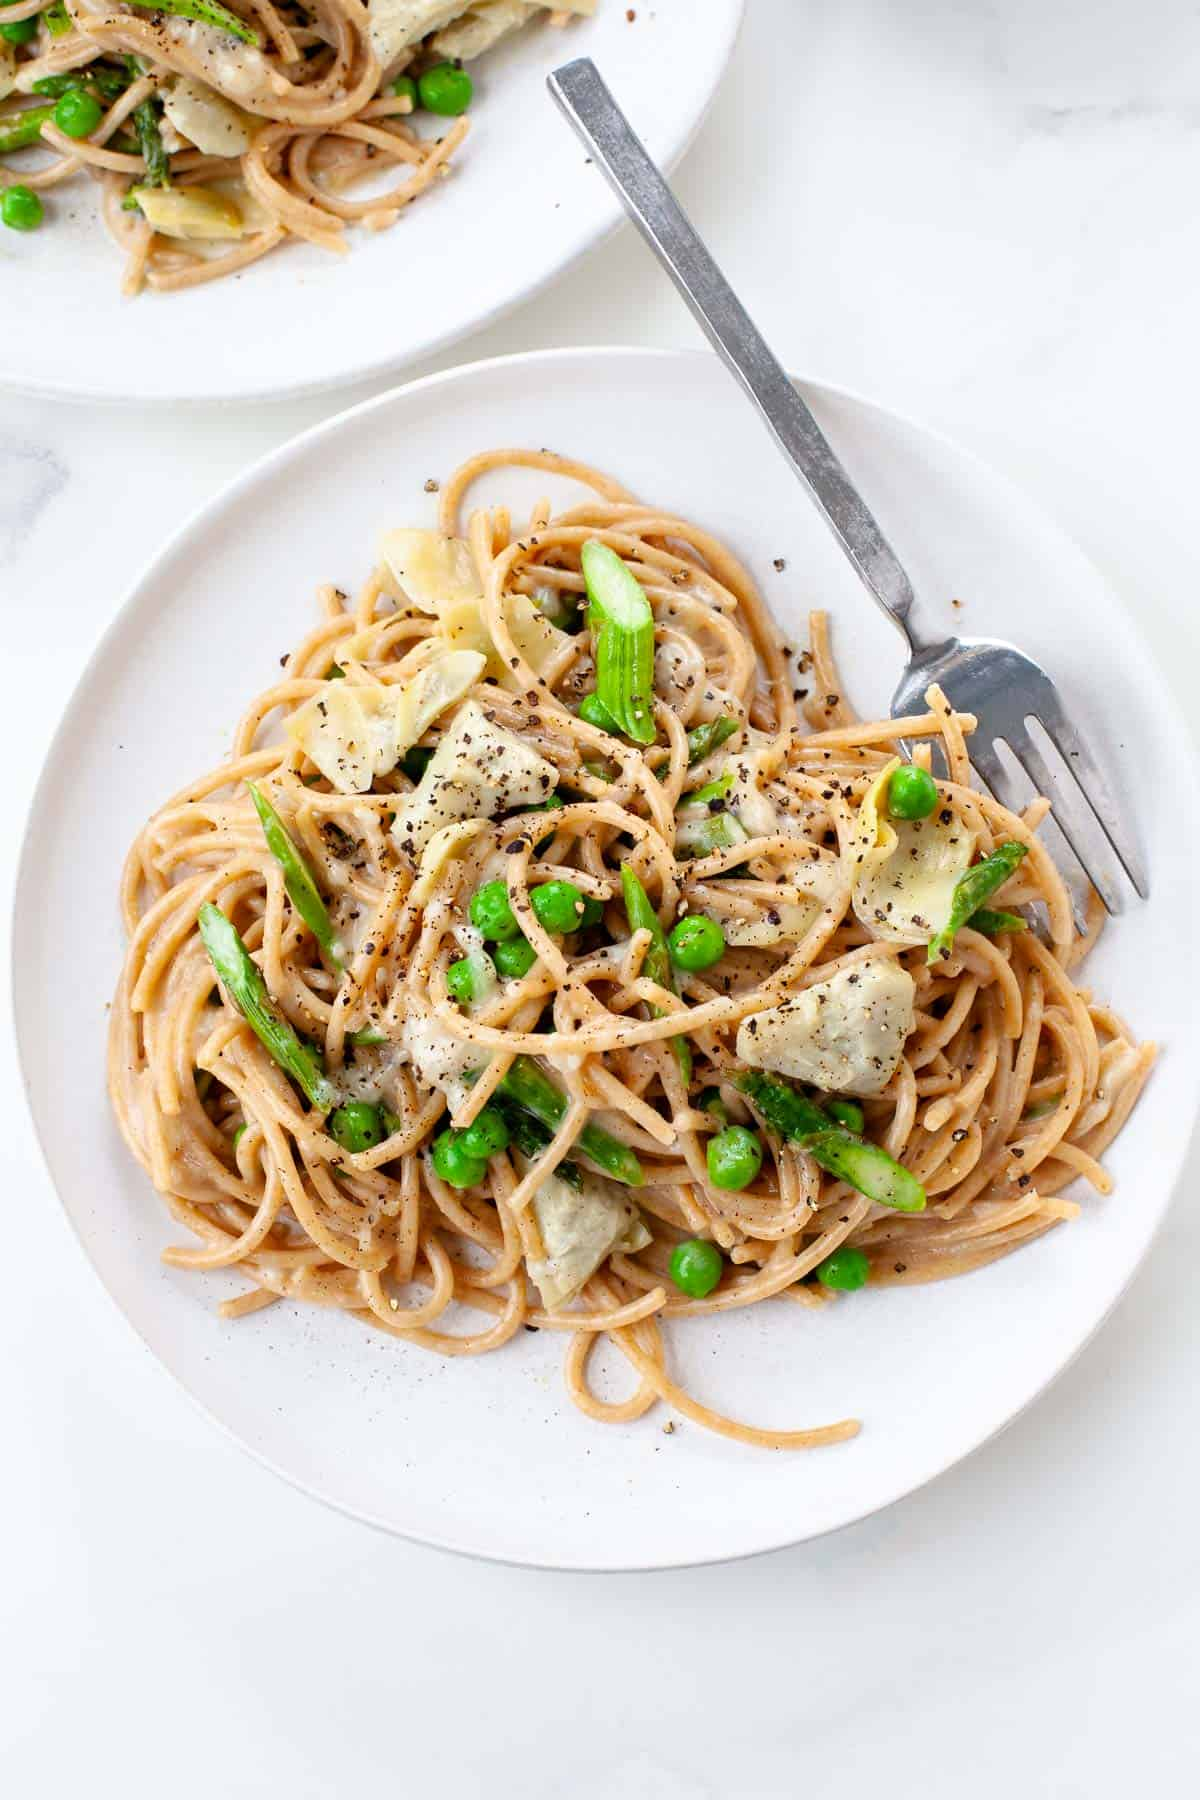 spring vegetable pasta with asparagus, peas, artichokes on white plate with fork white background